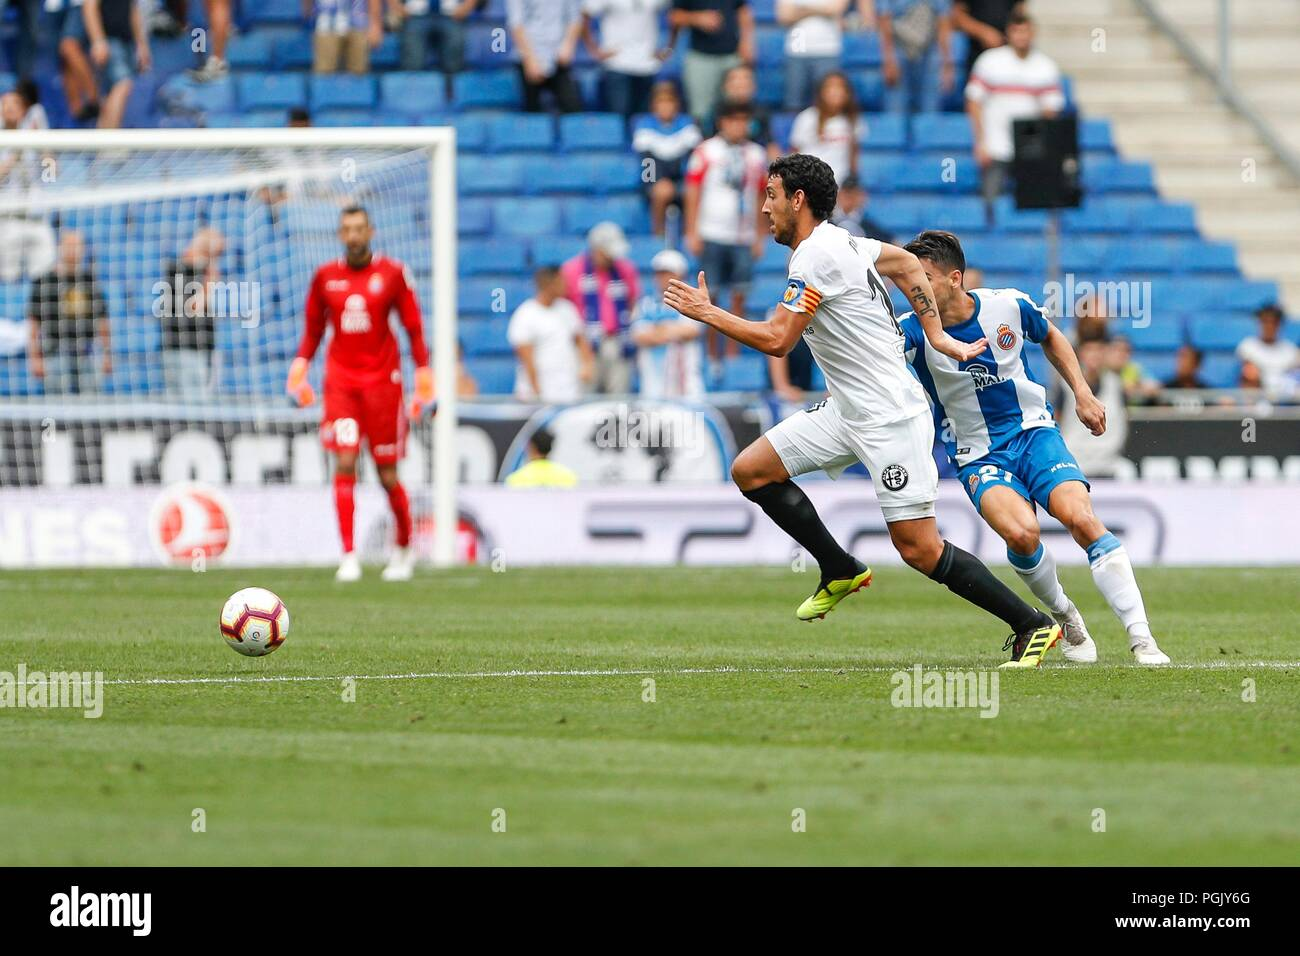 af23be963 SPAIN - 26th of August  Valencia CF midfielder Daniel Parejo (10) during the